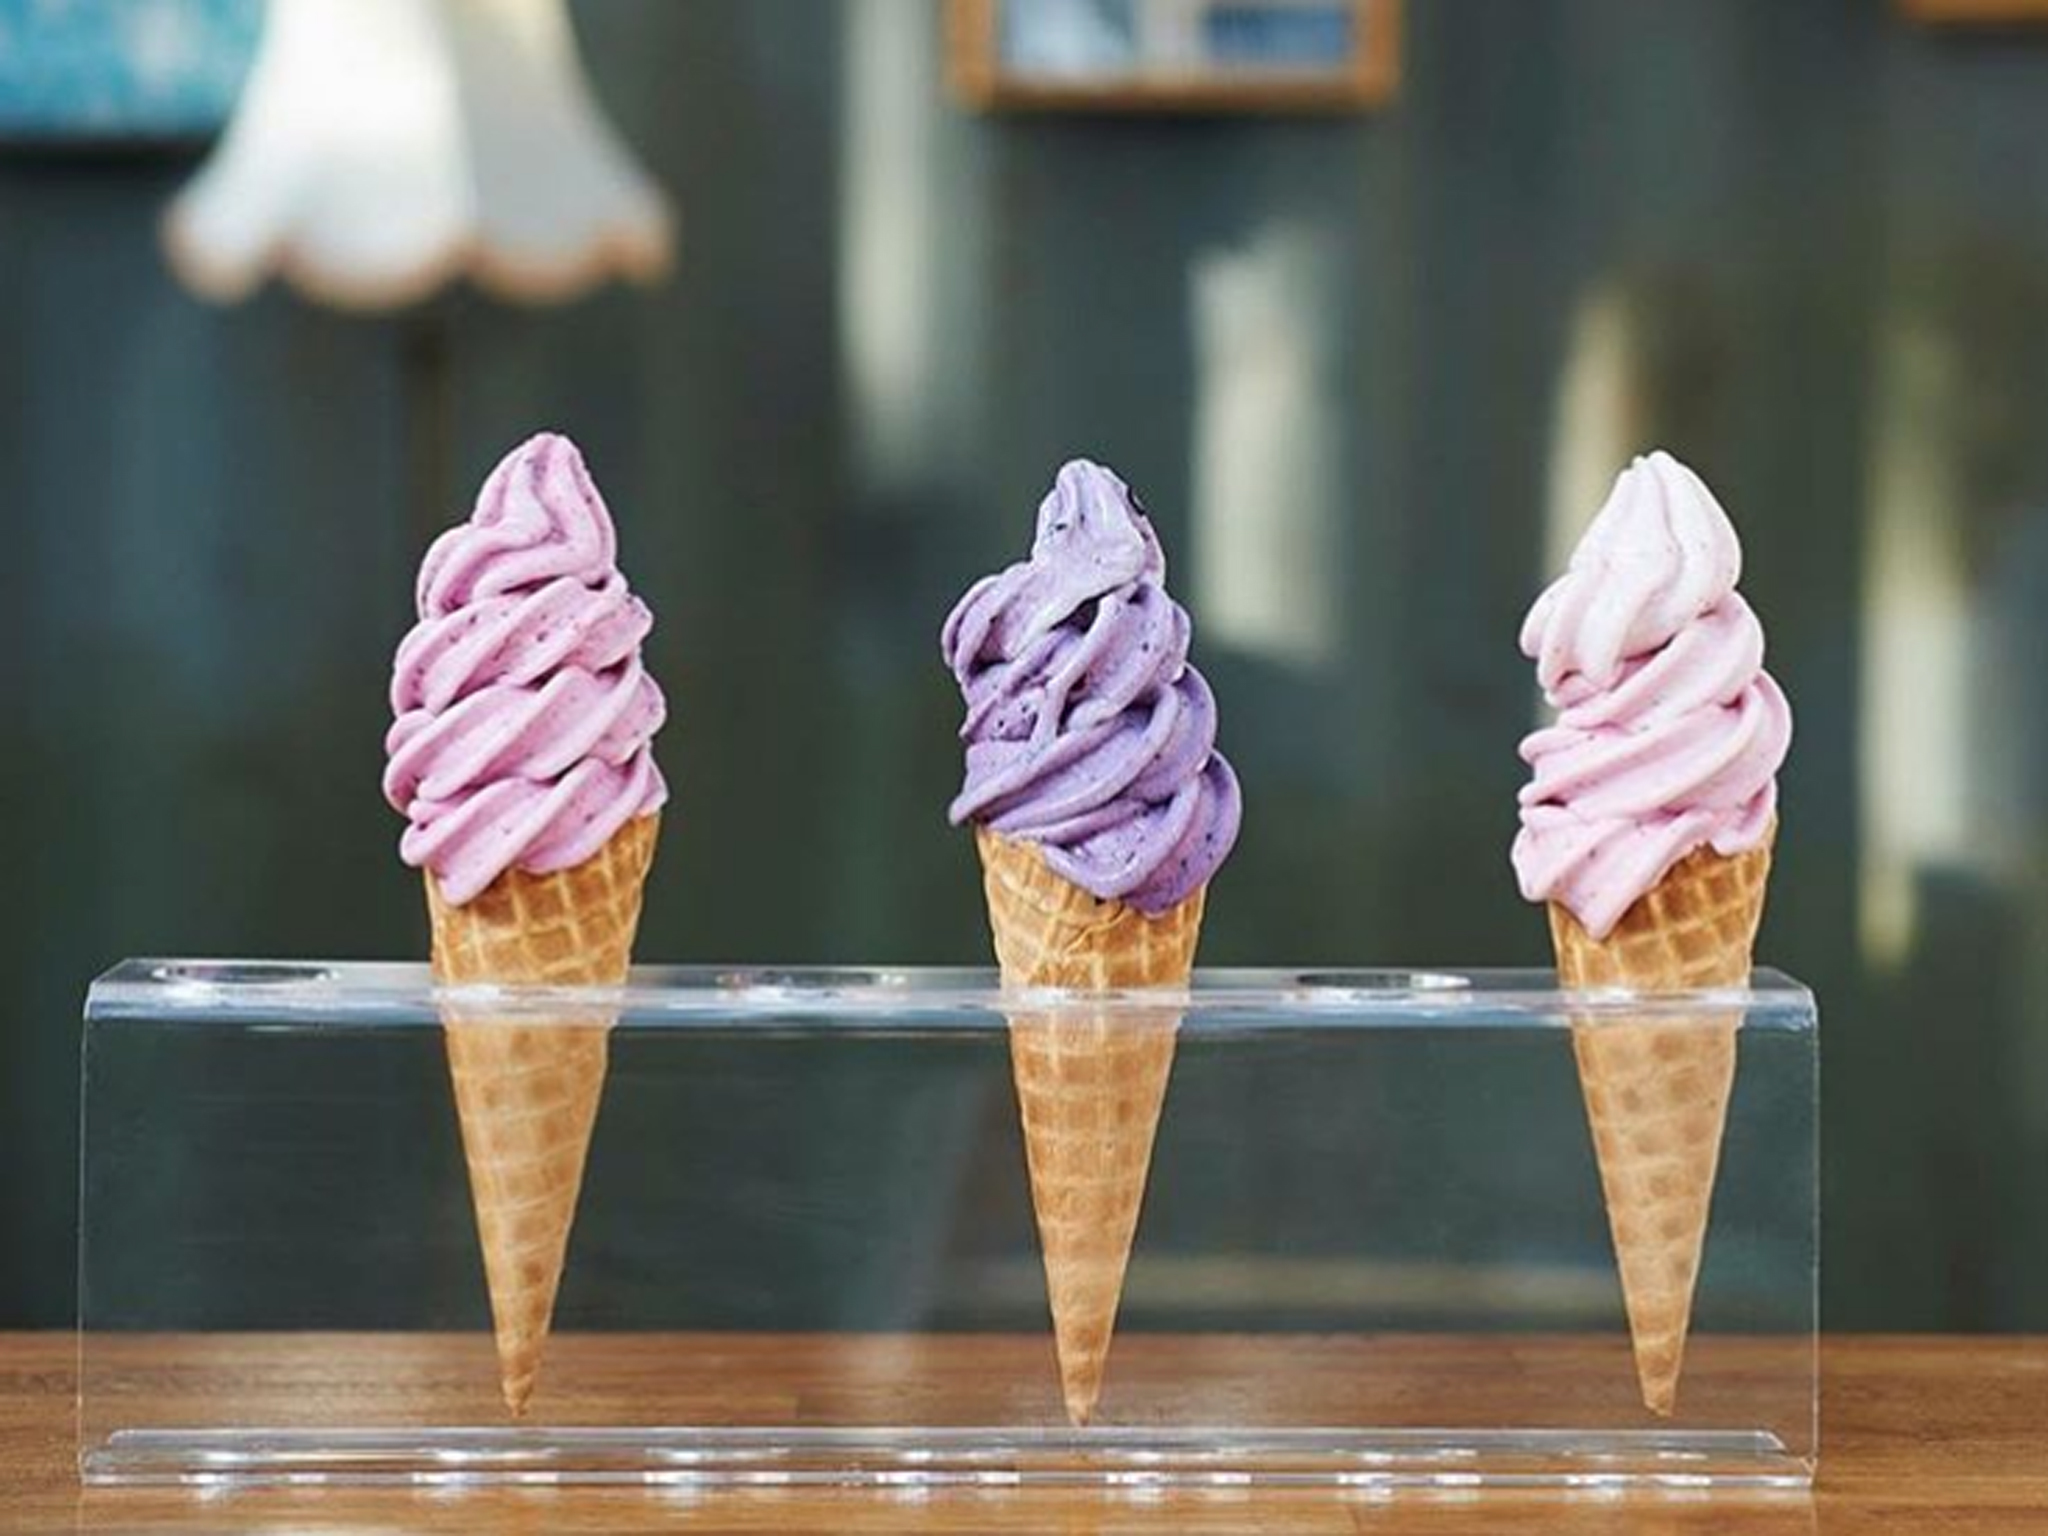 London S Best Ice Cream Parlours 29 Super Cool Ice Cream